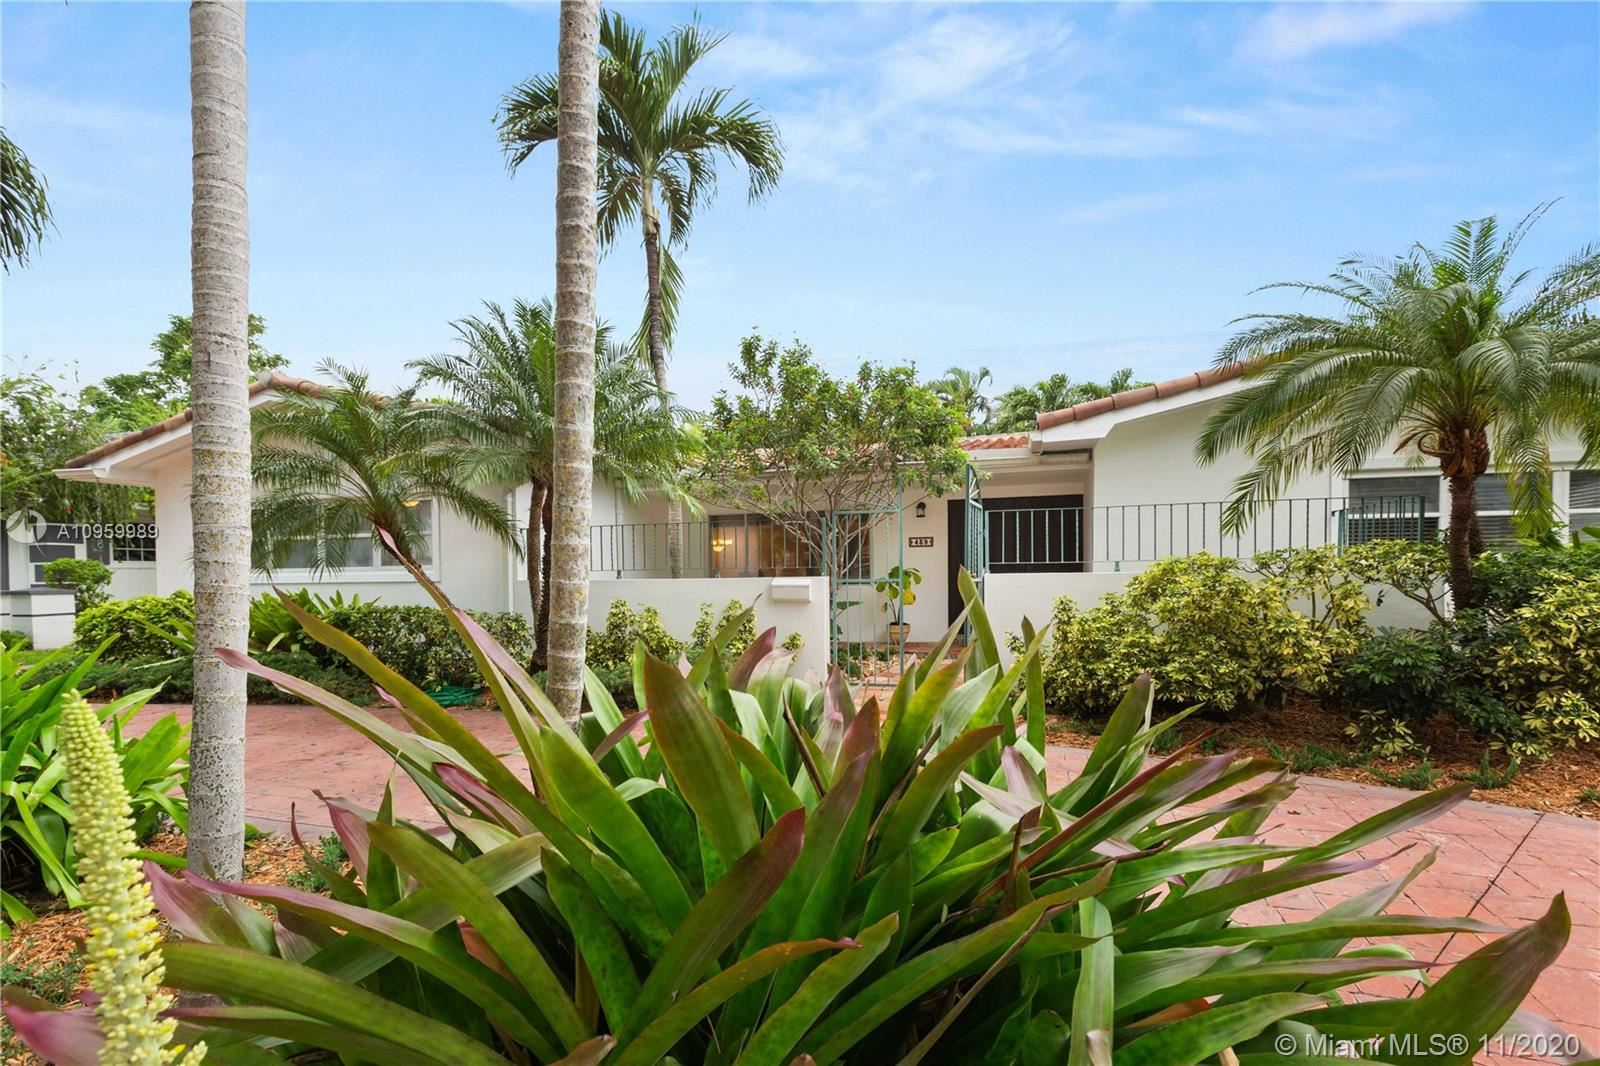 439 Hardee Rd, Coral Gables, FL 33146 - #: A10959989